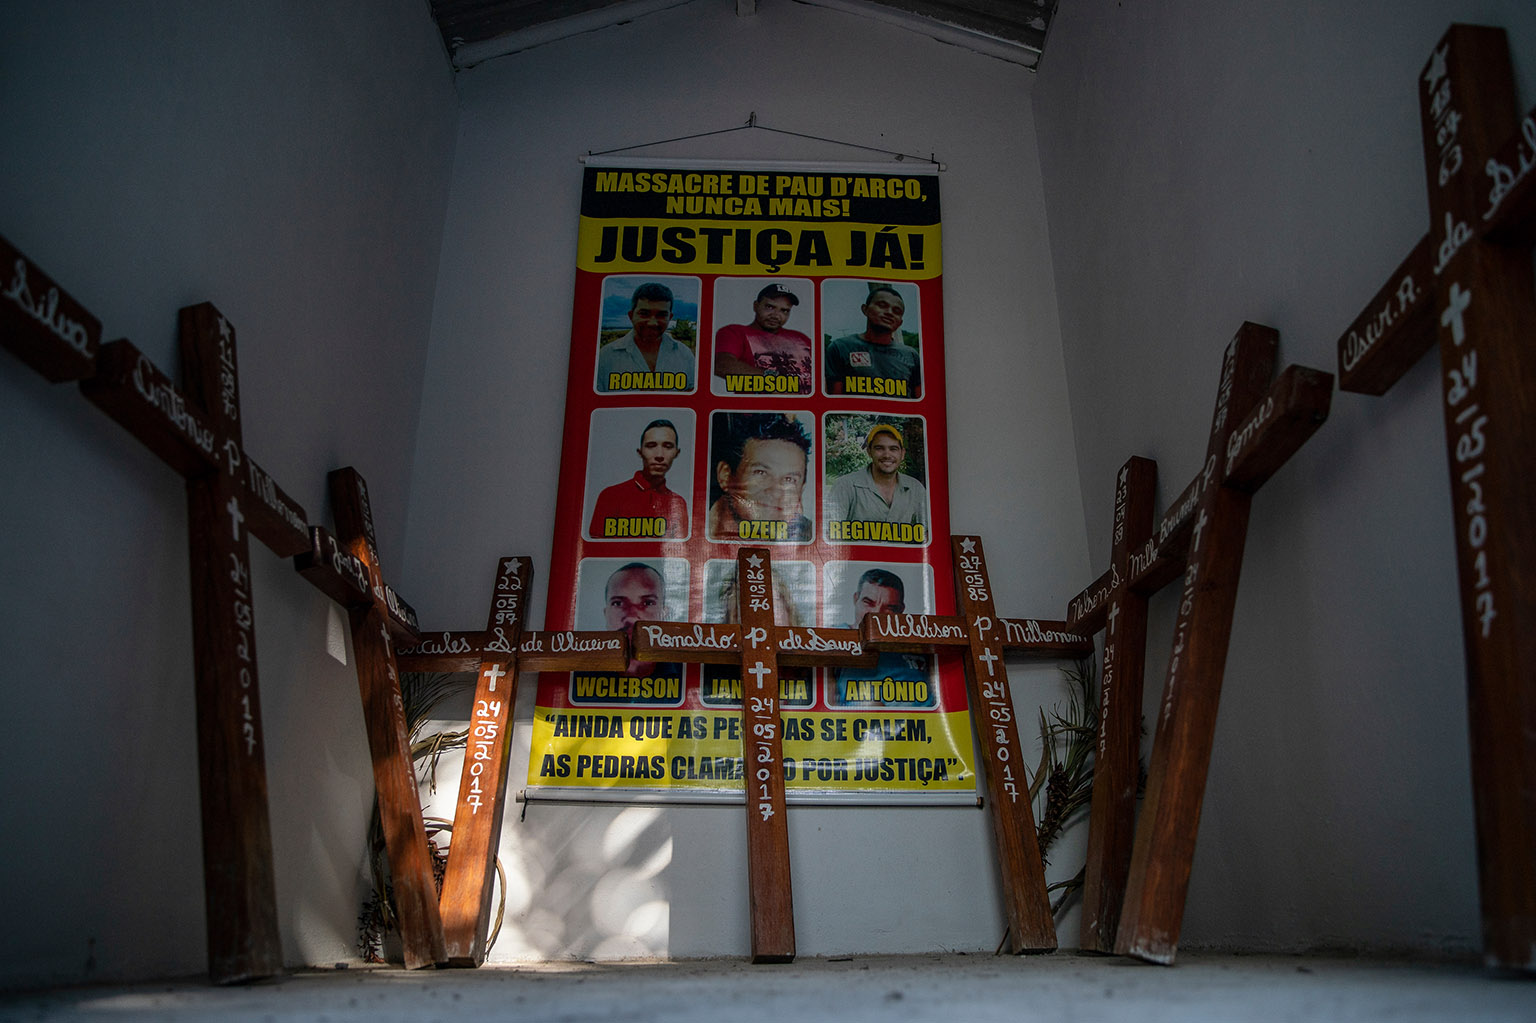 A memorial to those killed in a 2017 massacre of rural workers in Pau D'Arco, Brazil is pictured on Sunday, June 9, 2019.